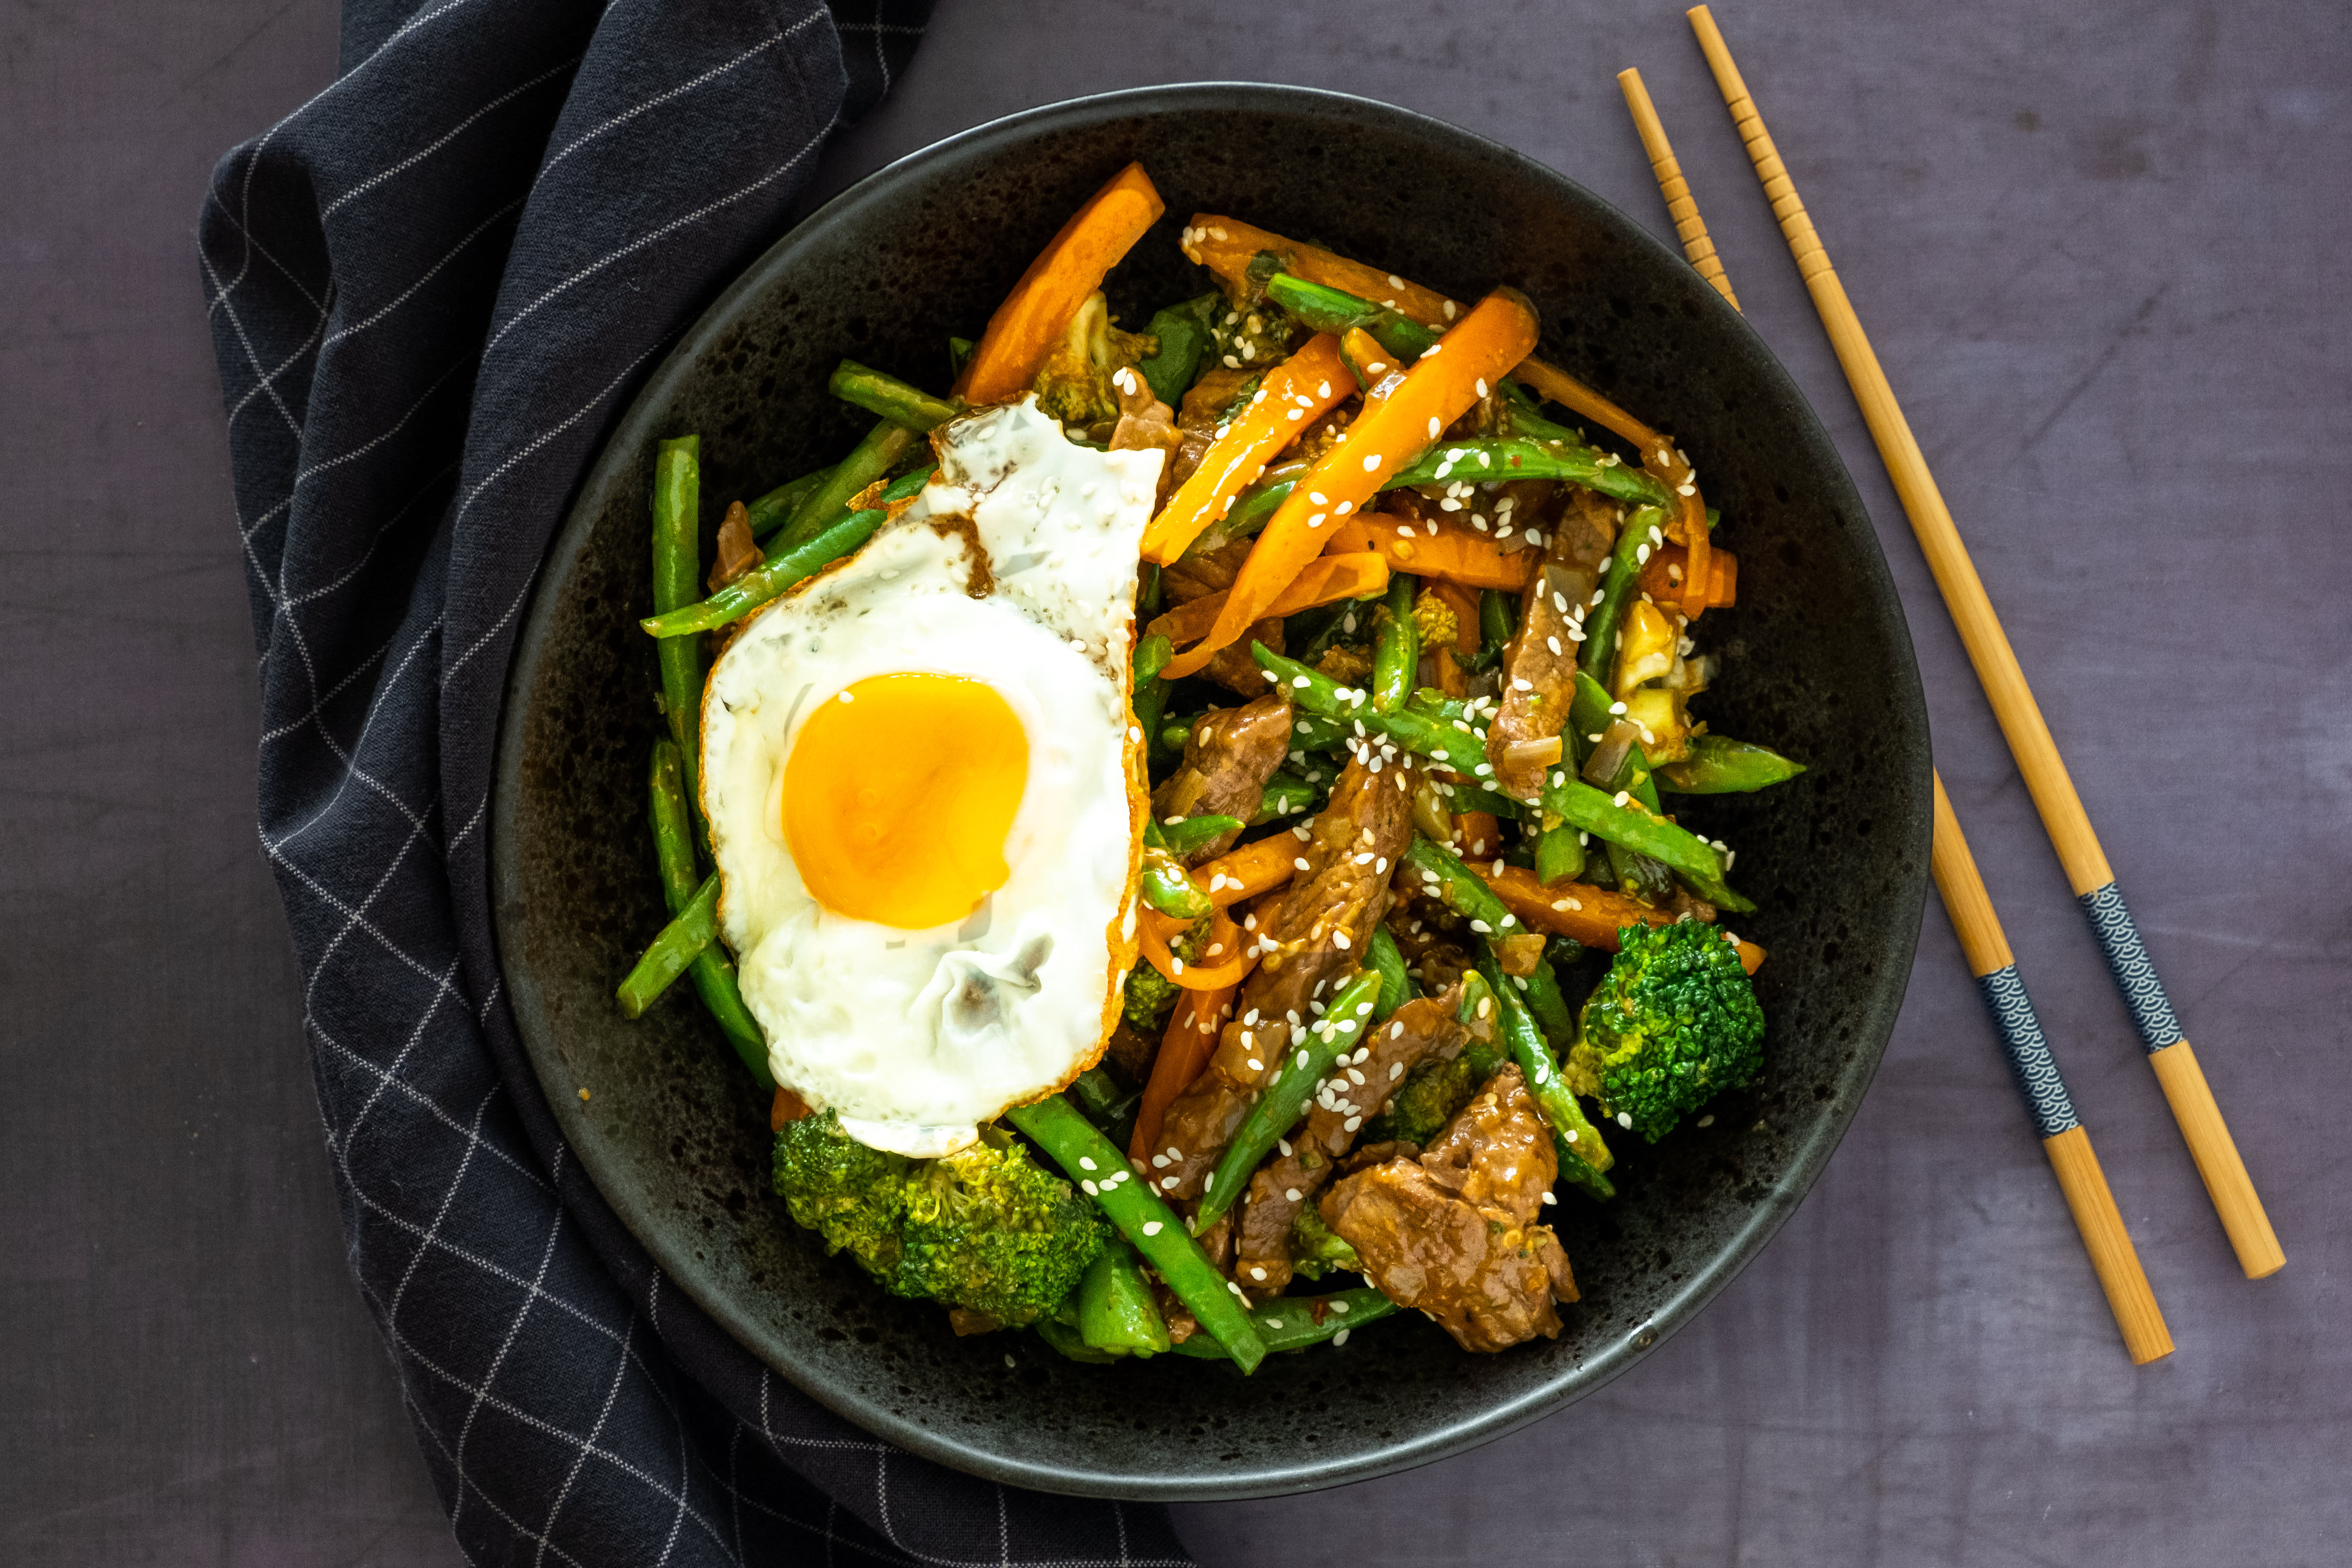 Korean Beef and Vegetable Stir-fry with Fried Eggs